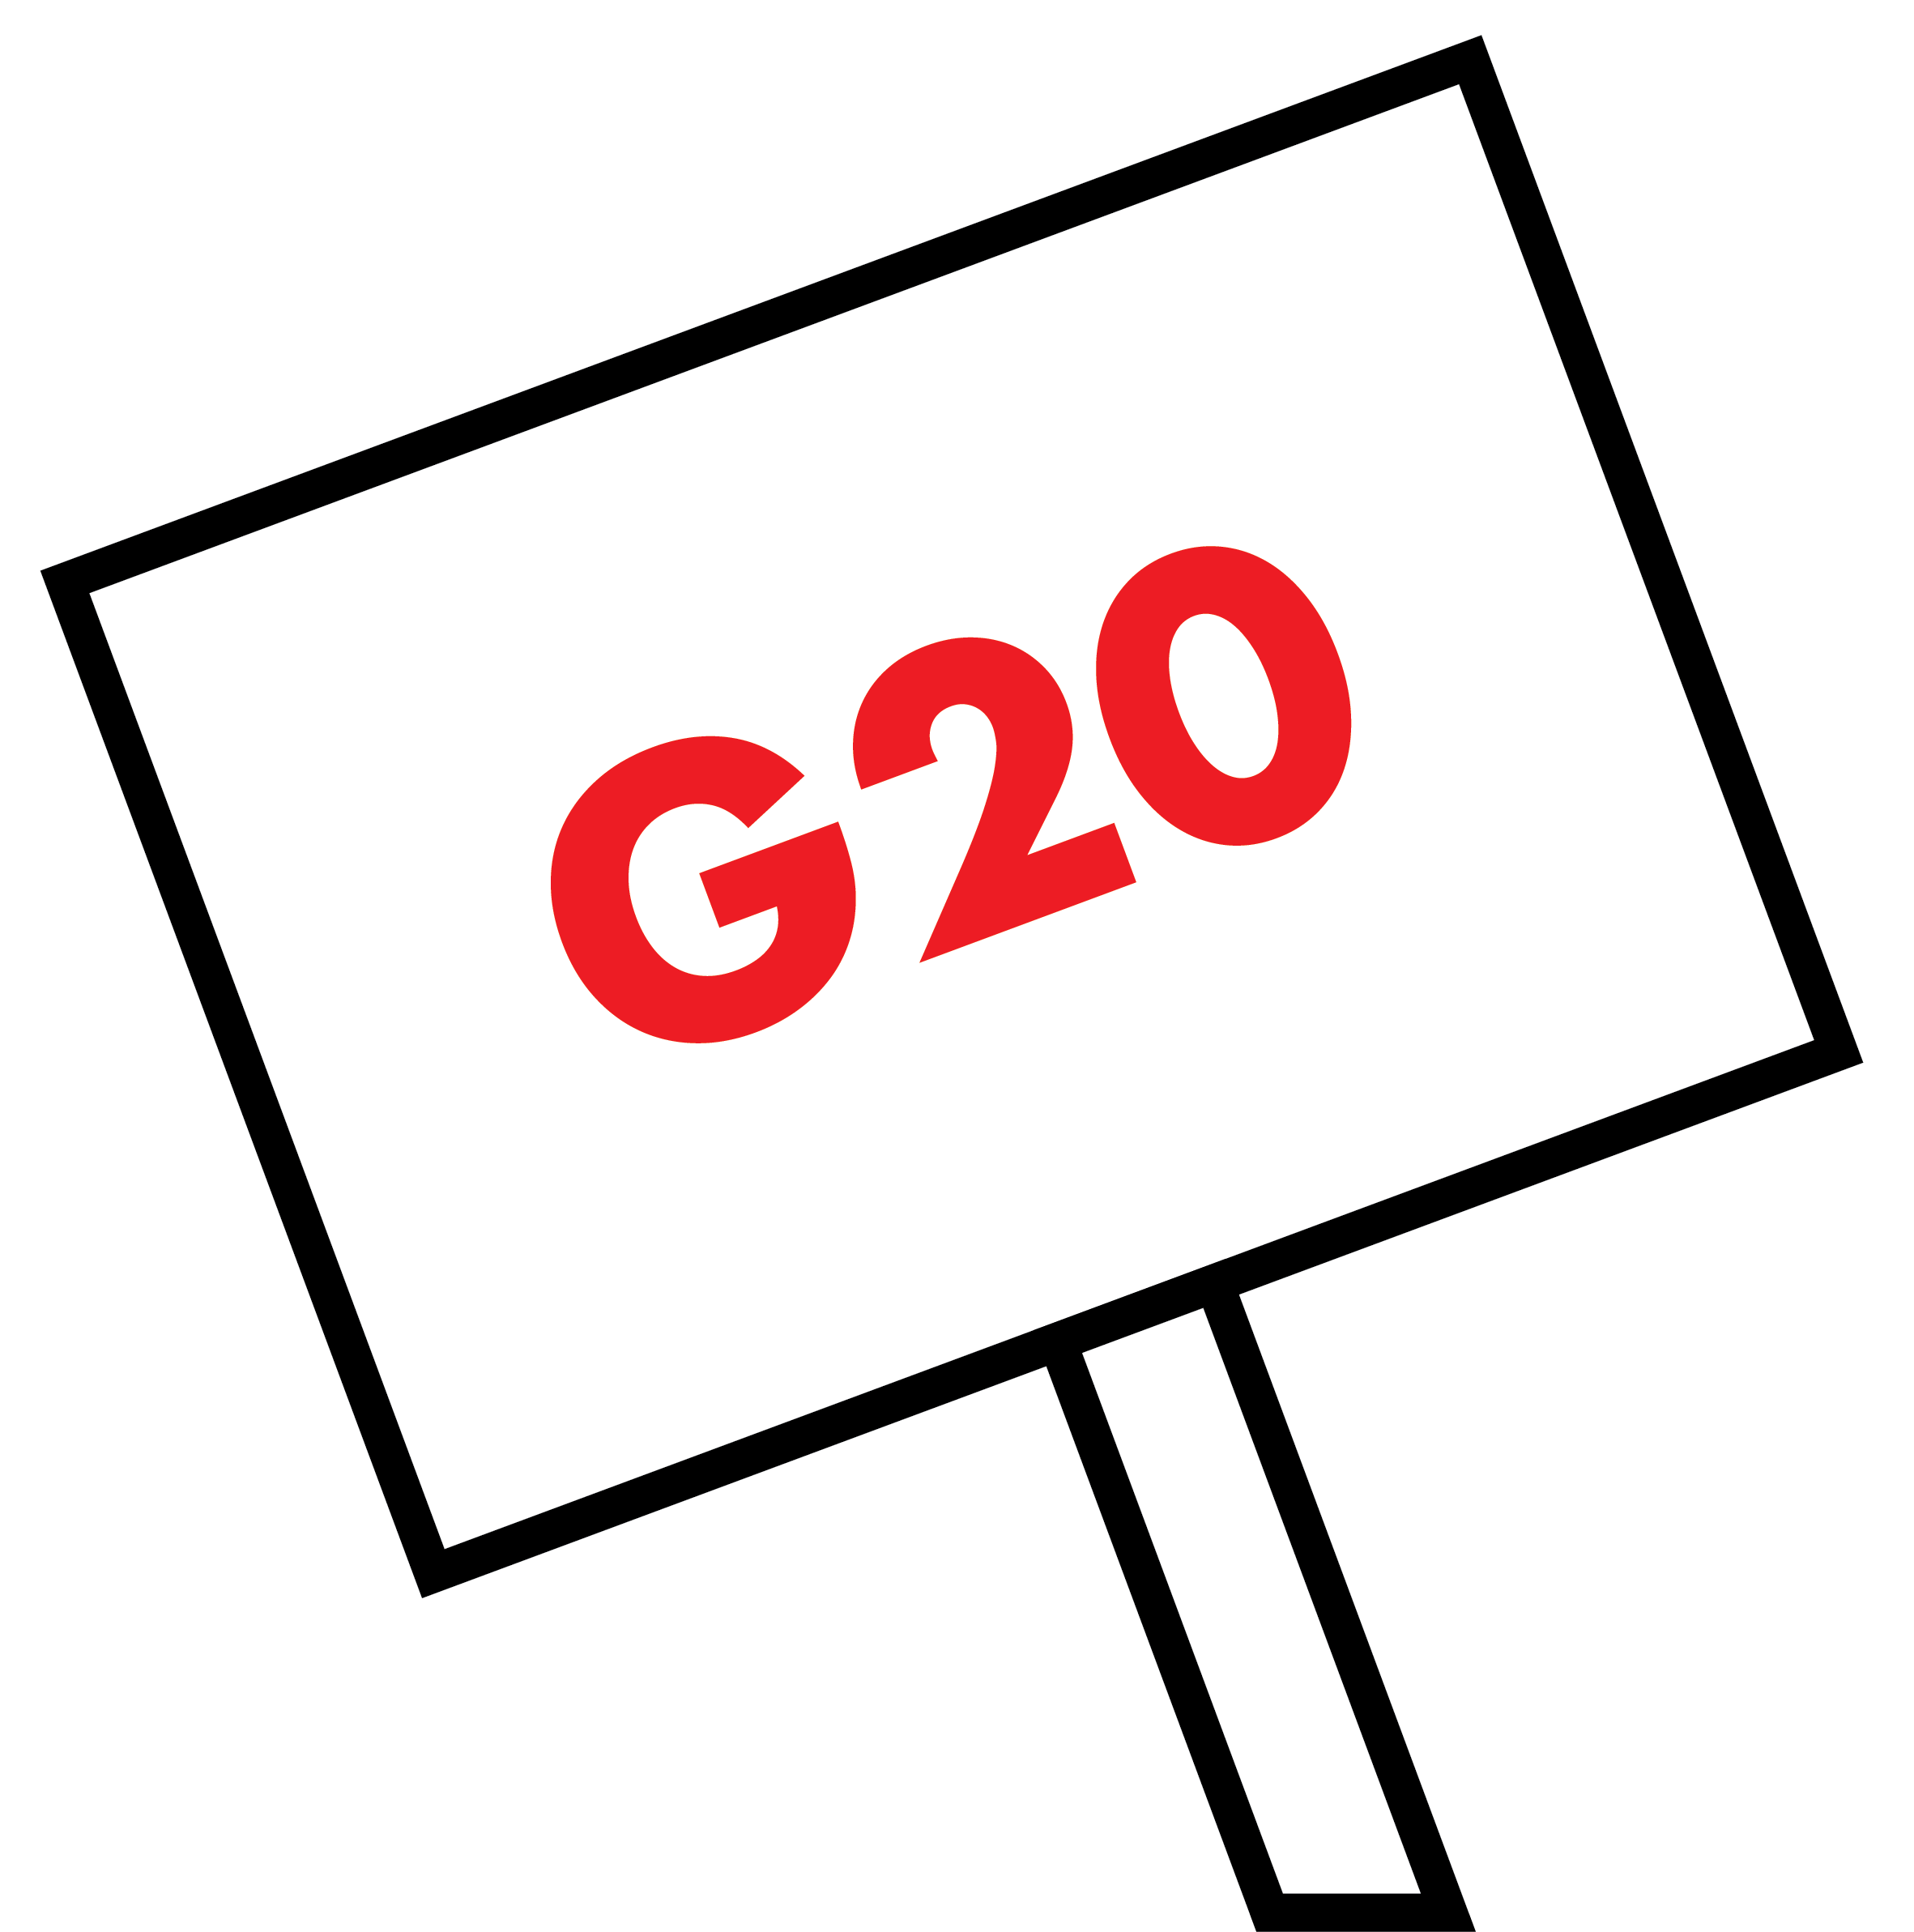 Protest in retrospect: G20 summits